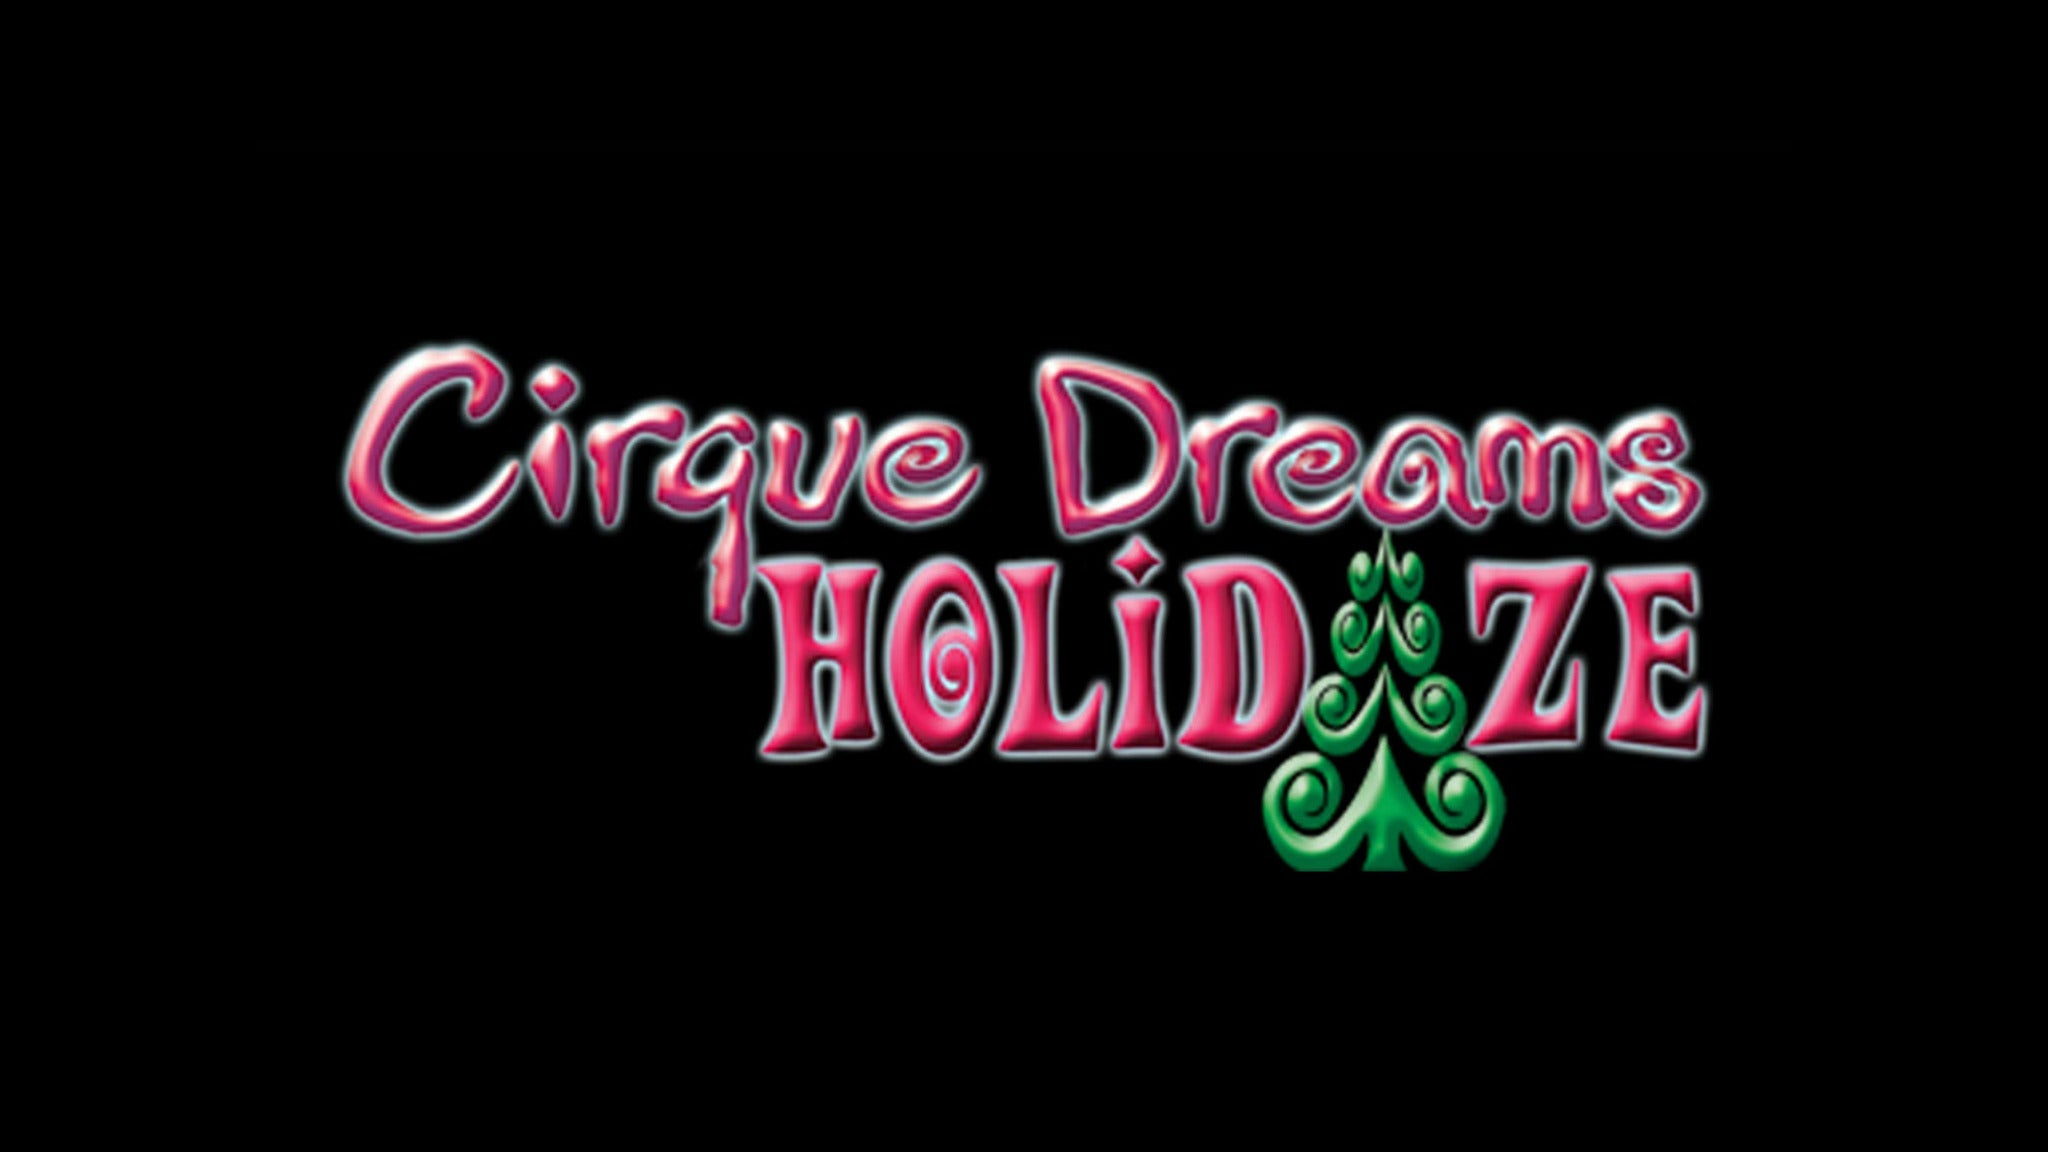 Cirque Dreams Holidaze (Touring) at Grossinger Motors Arena